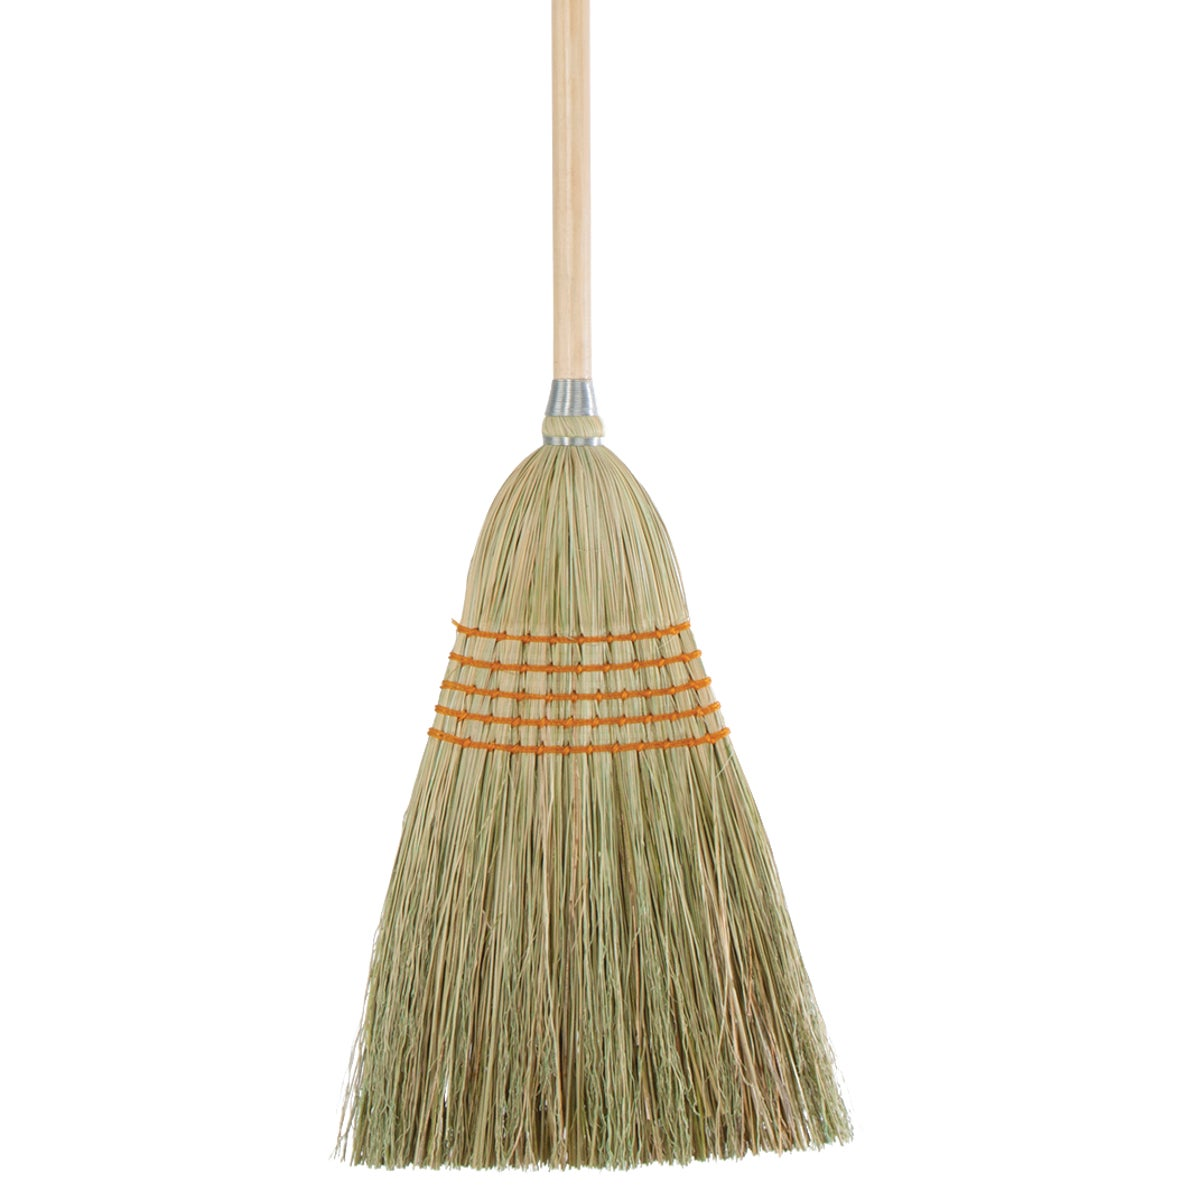 11.5 In. W. x 42 In. L. Natural Wood Handle Lightweight House Corn Broom